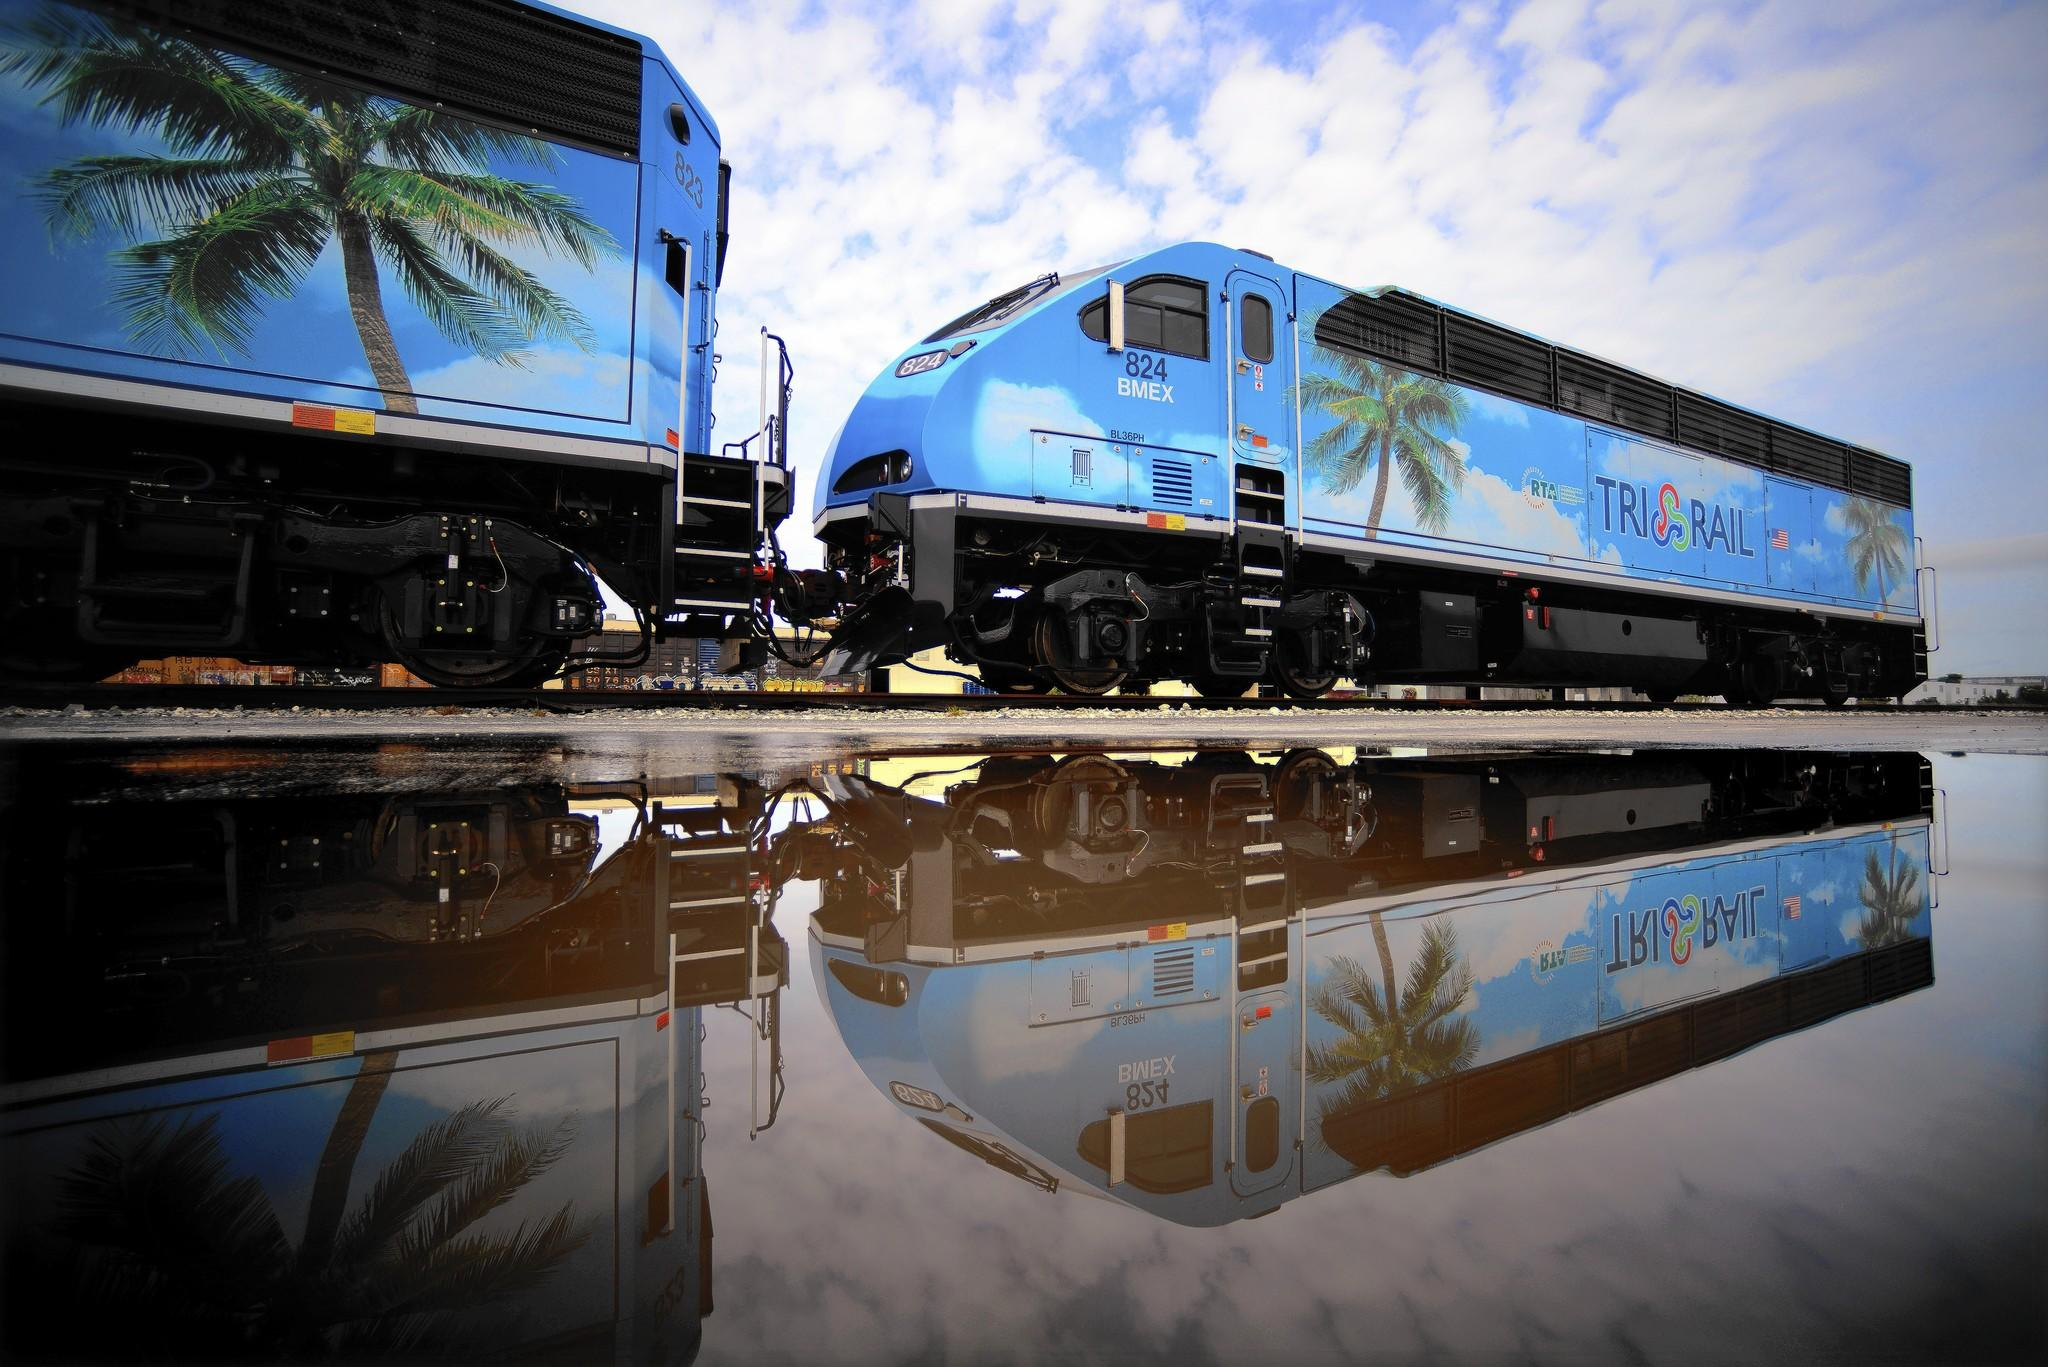 Two of the new BL-36PH locomotives that were recently deilvered to Tri-Rail are seen on a siding in the Tri-Rail yard in Hialeah, Thursday, Feb. 27, 2013. The 12 new engines will begin service sometime in mid-March and promise to be quiter, pollute less and have an extra motor to power the passenger carriages.